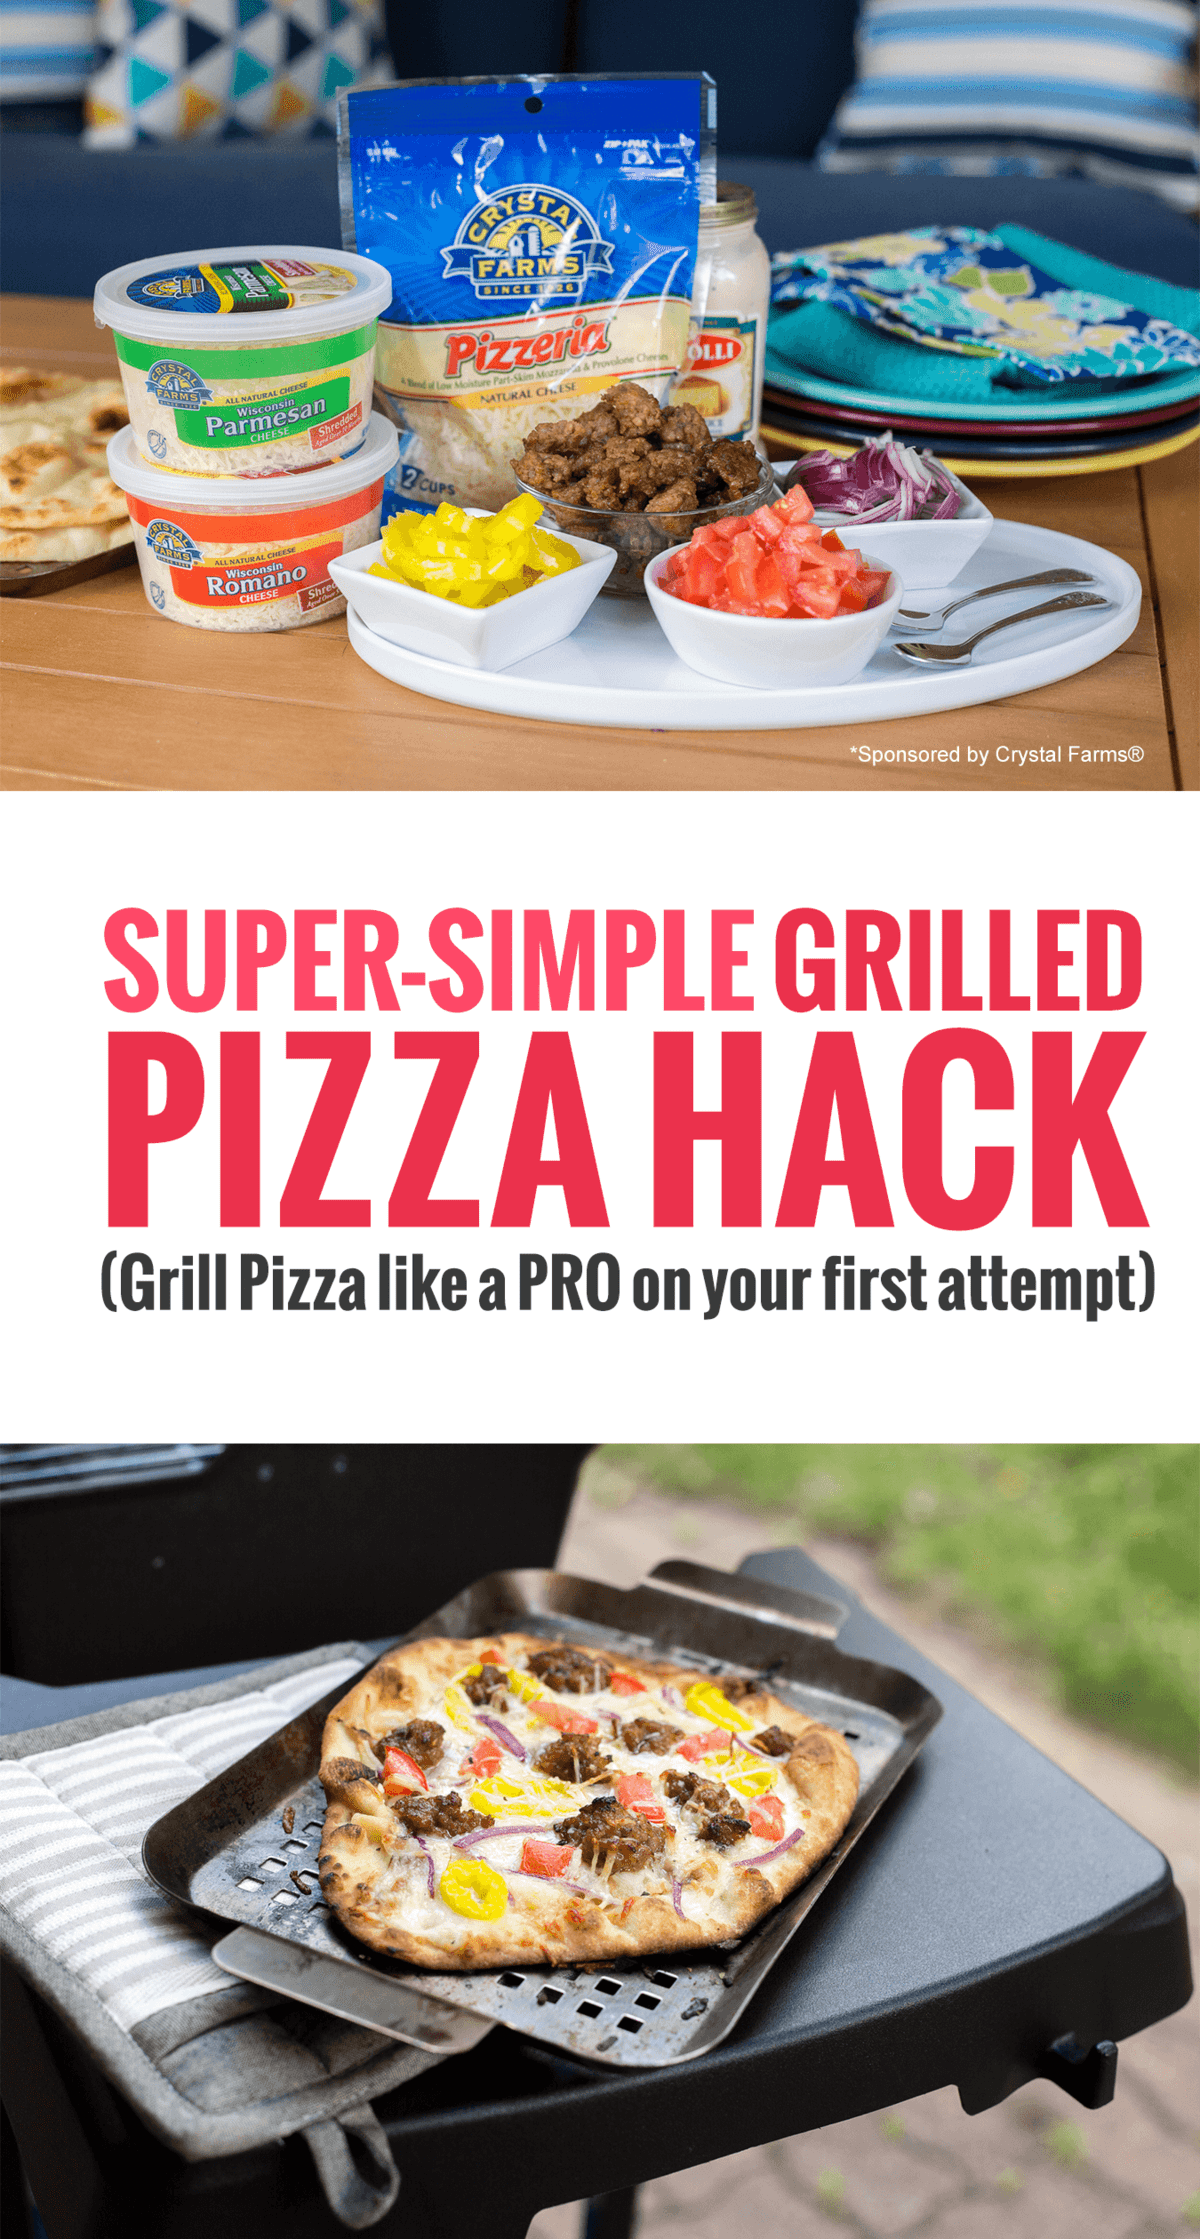 Grilled Pizza 101: This Simple Grilled Pizza Hack is Insanely Delicious *Love this easy idea and recipe. My husband and kid love these topping combos.